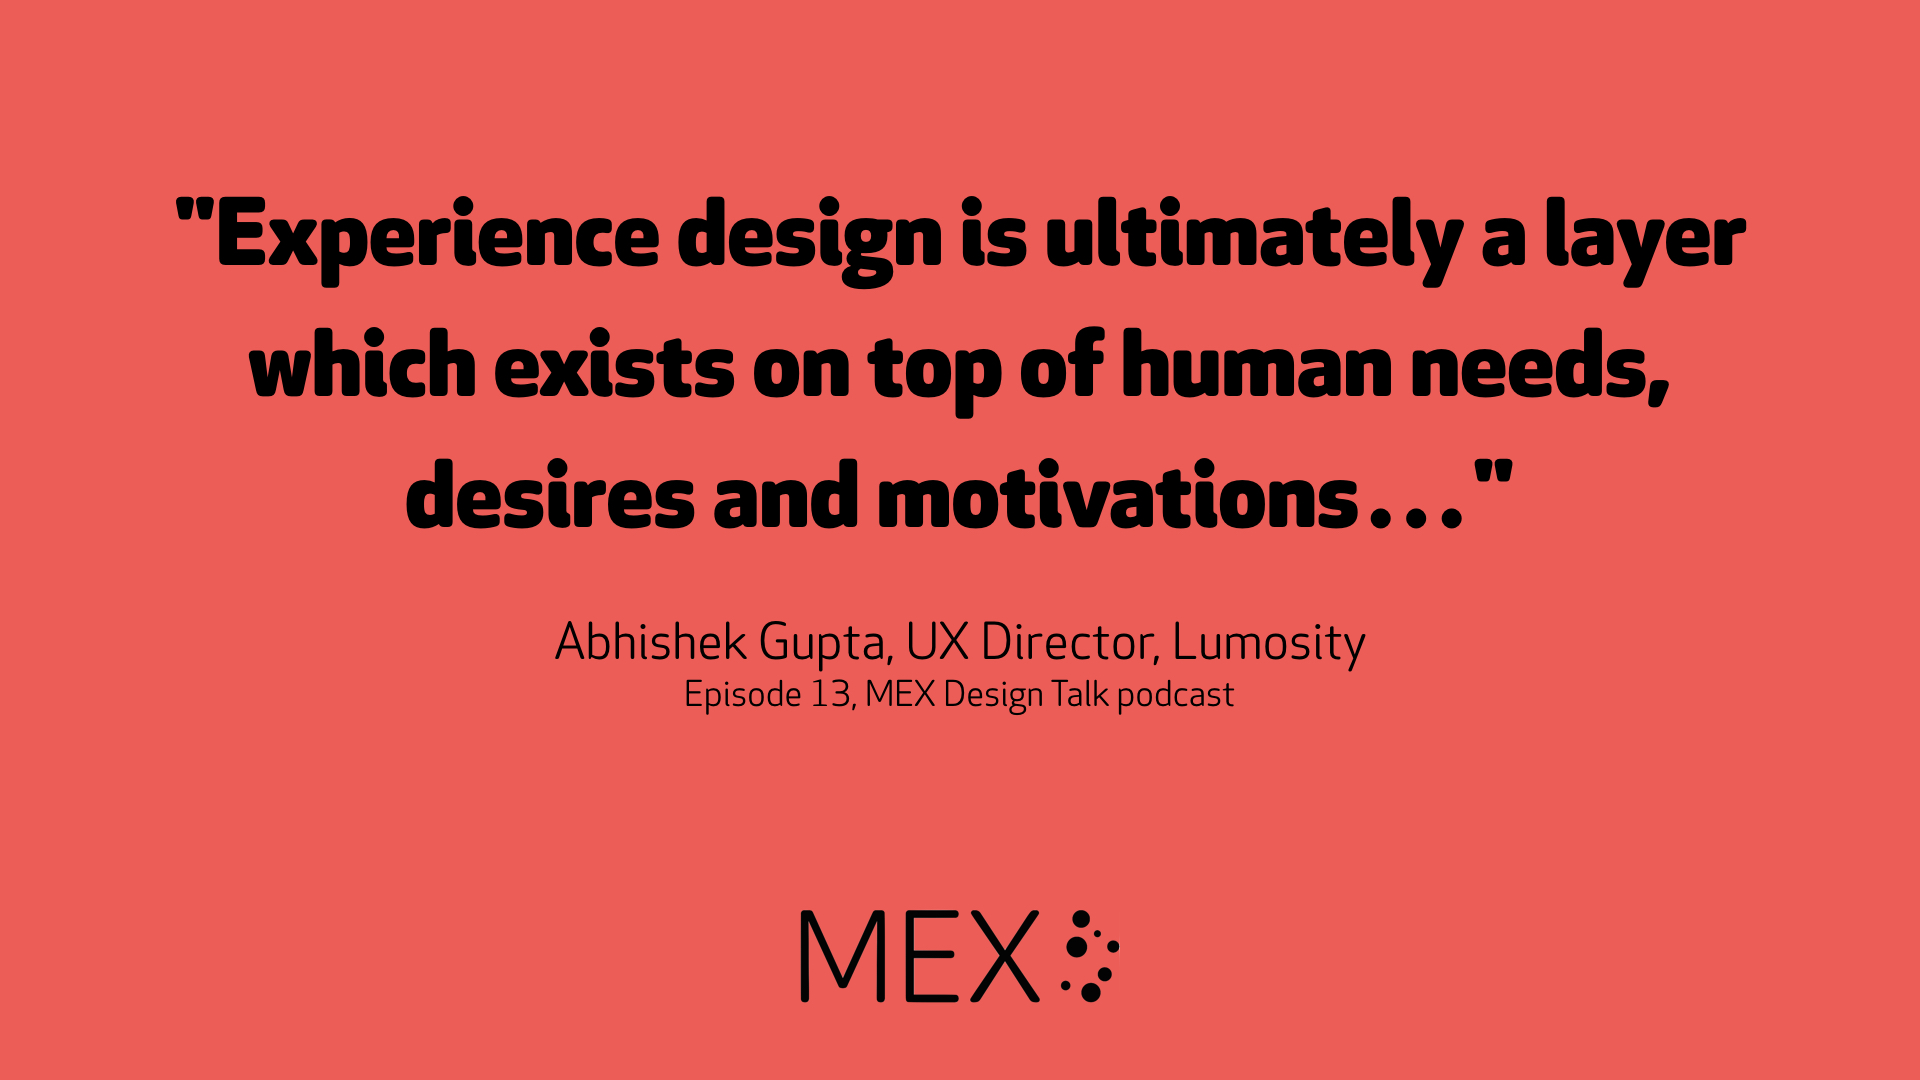 """Experience design is ultimately a layer which exists on top of human needs, desires and motivations…"" Abhishek Gupta, UX Director, Lumosity"